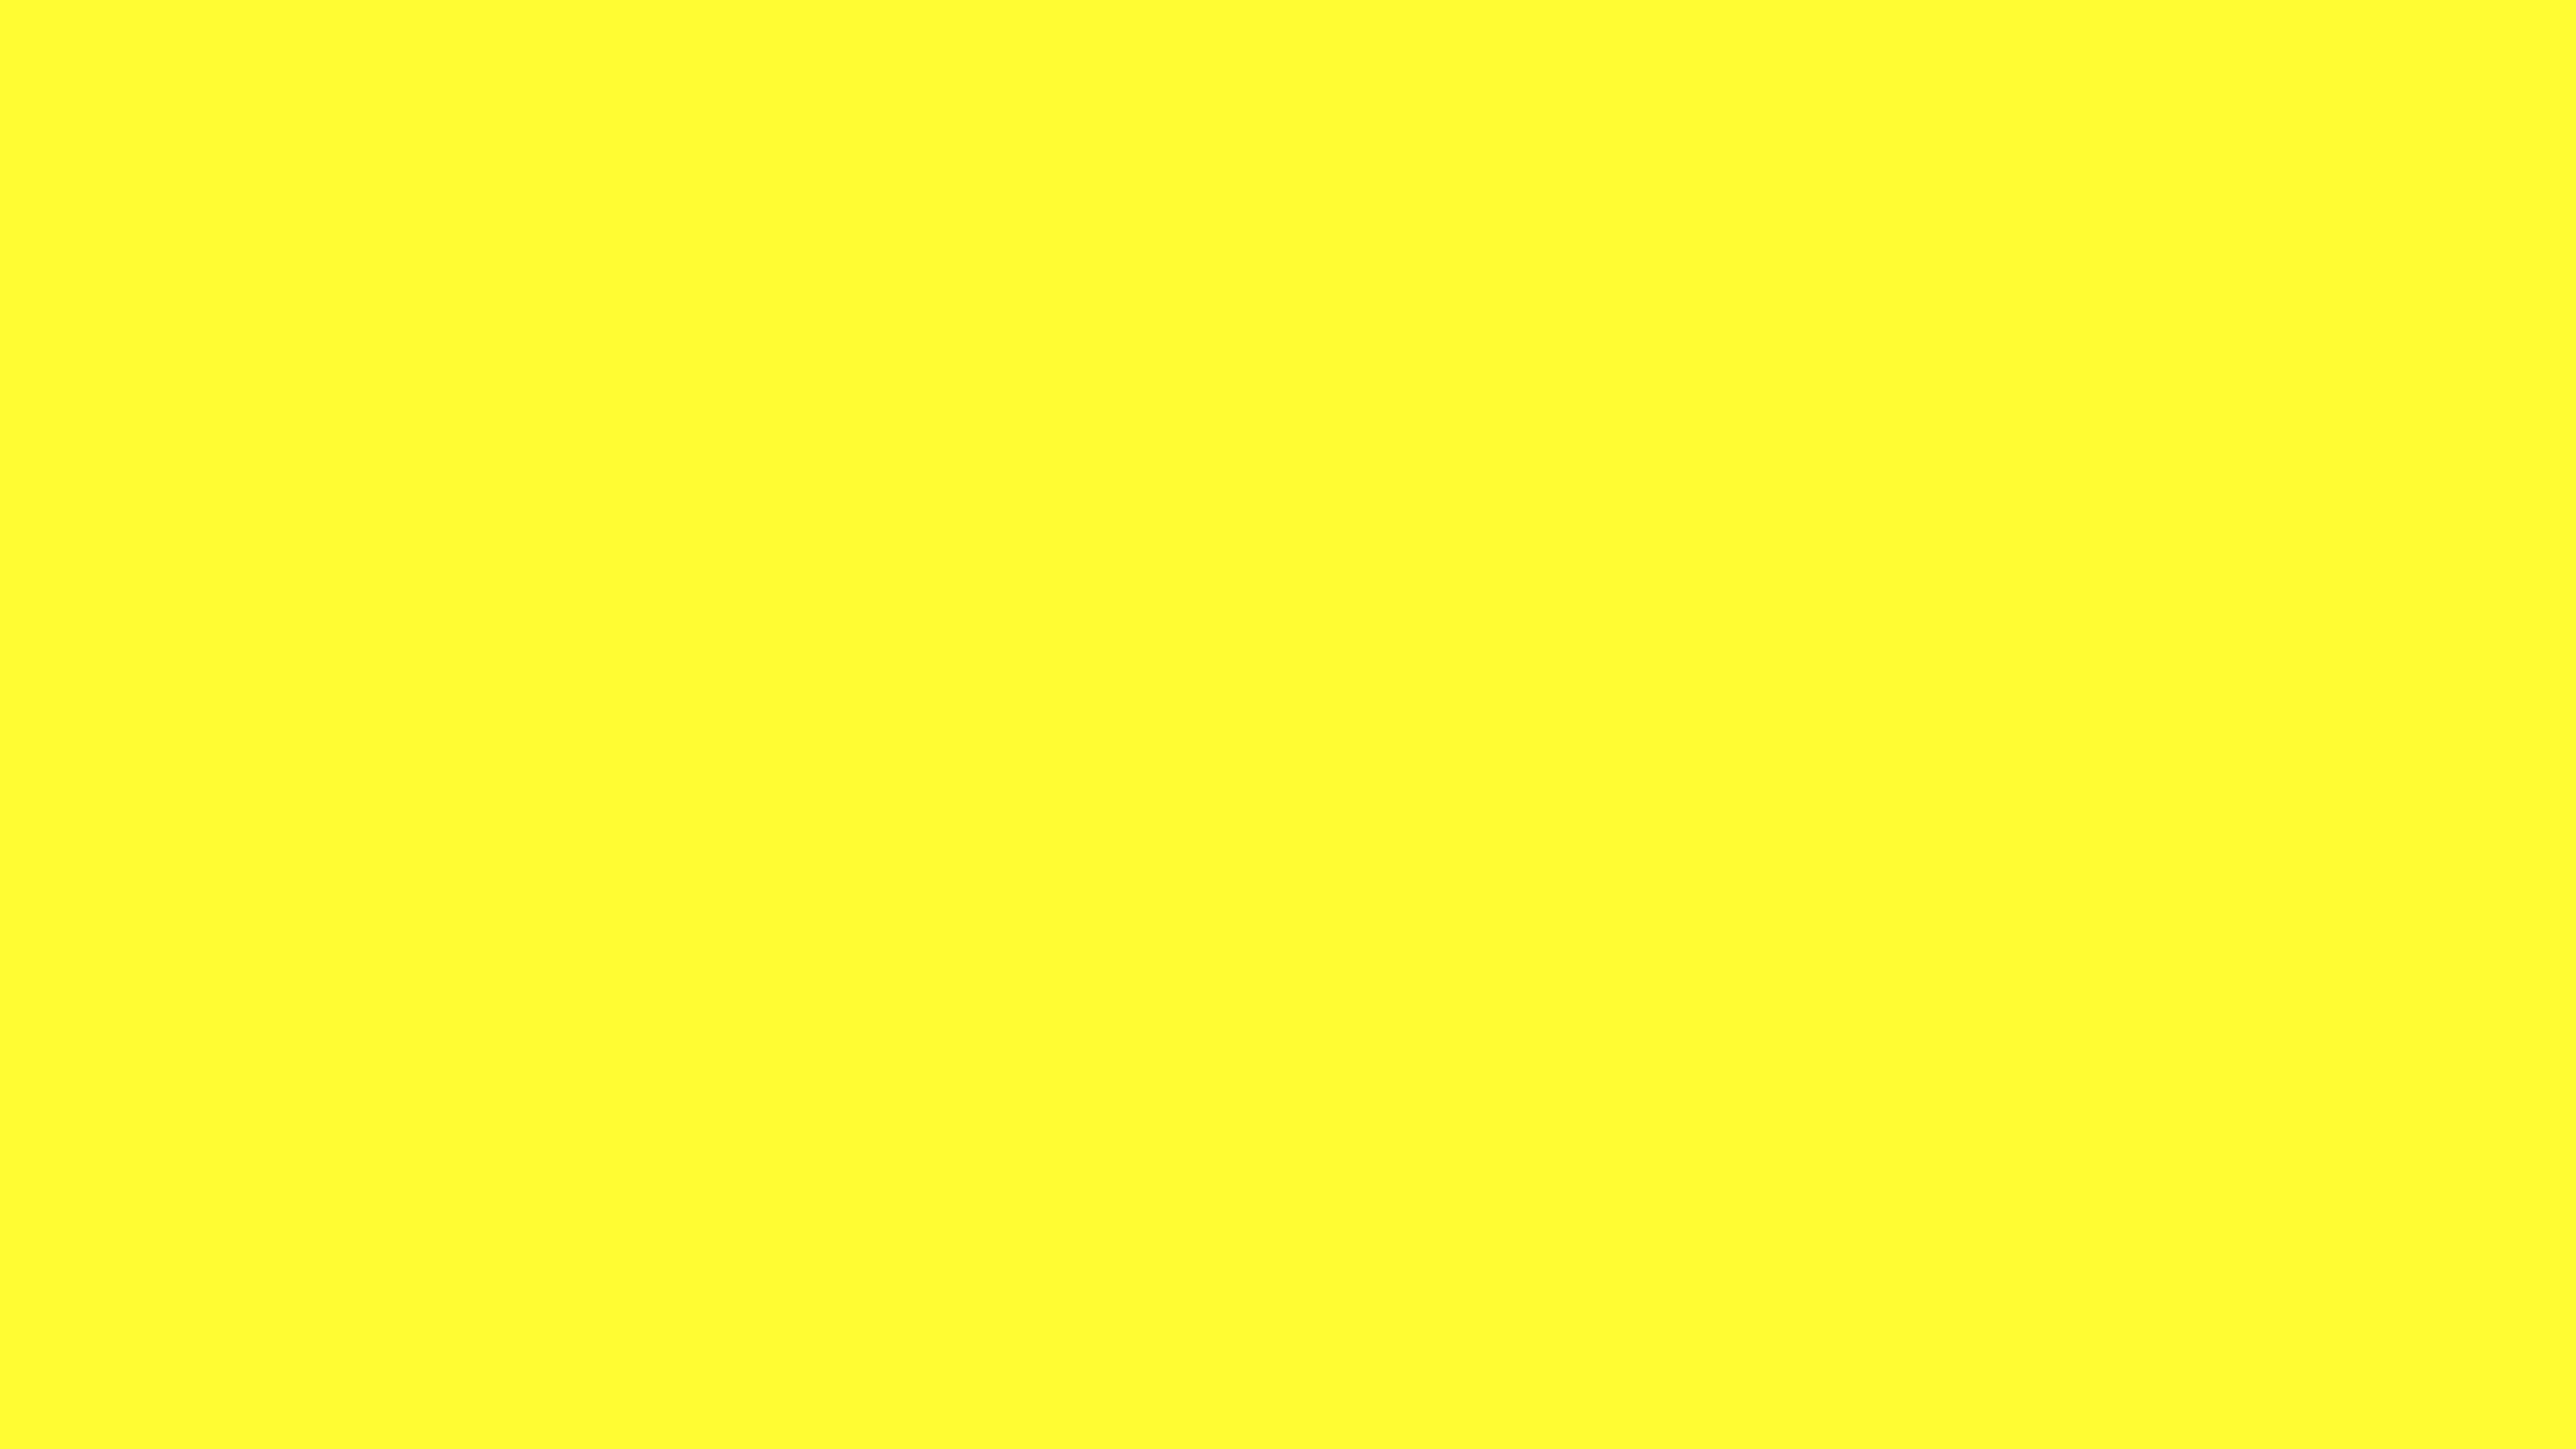 4096x2304 Yellow RYB Solid Color Background